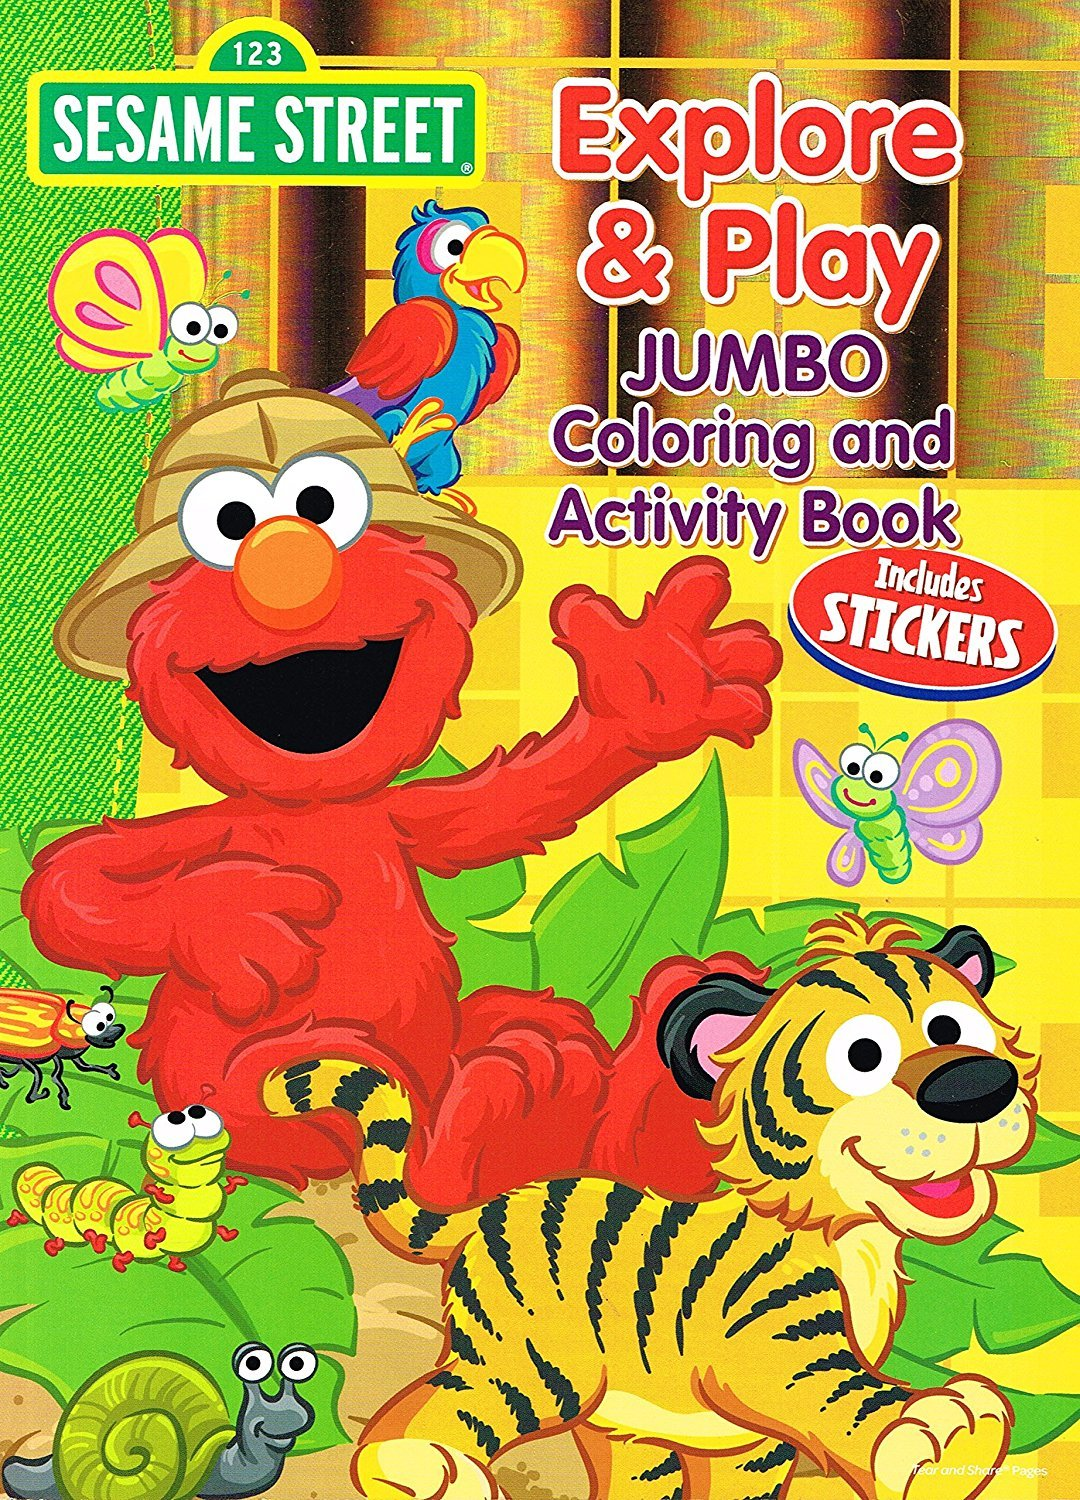 Sesame Street Explore & Play Jumbo Coloring & Activity Book (Includes Sticker)